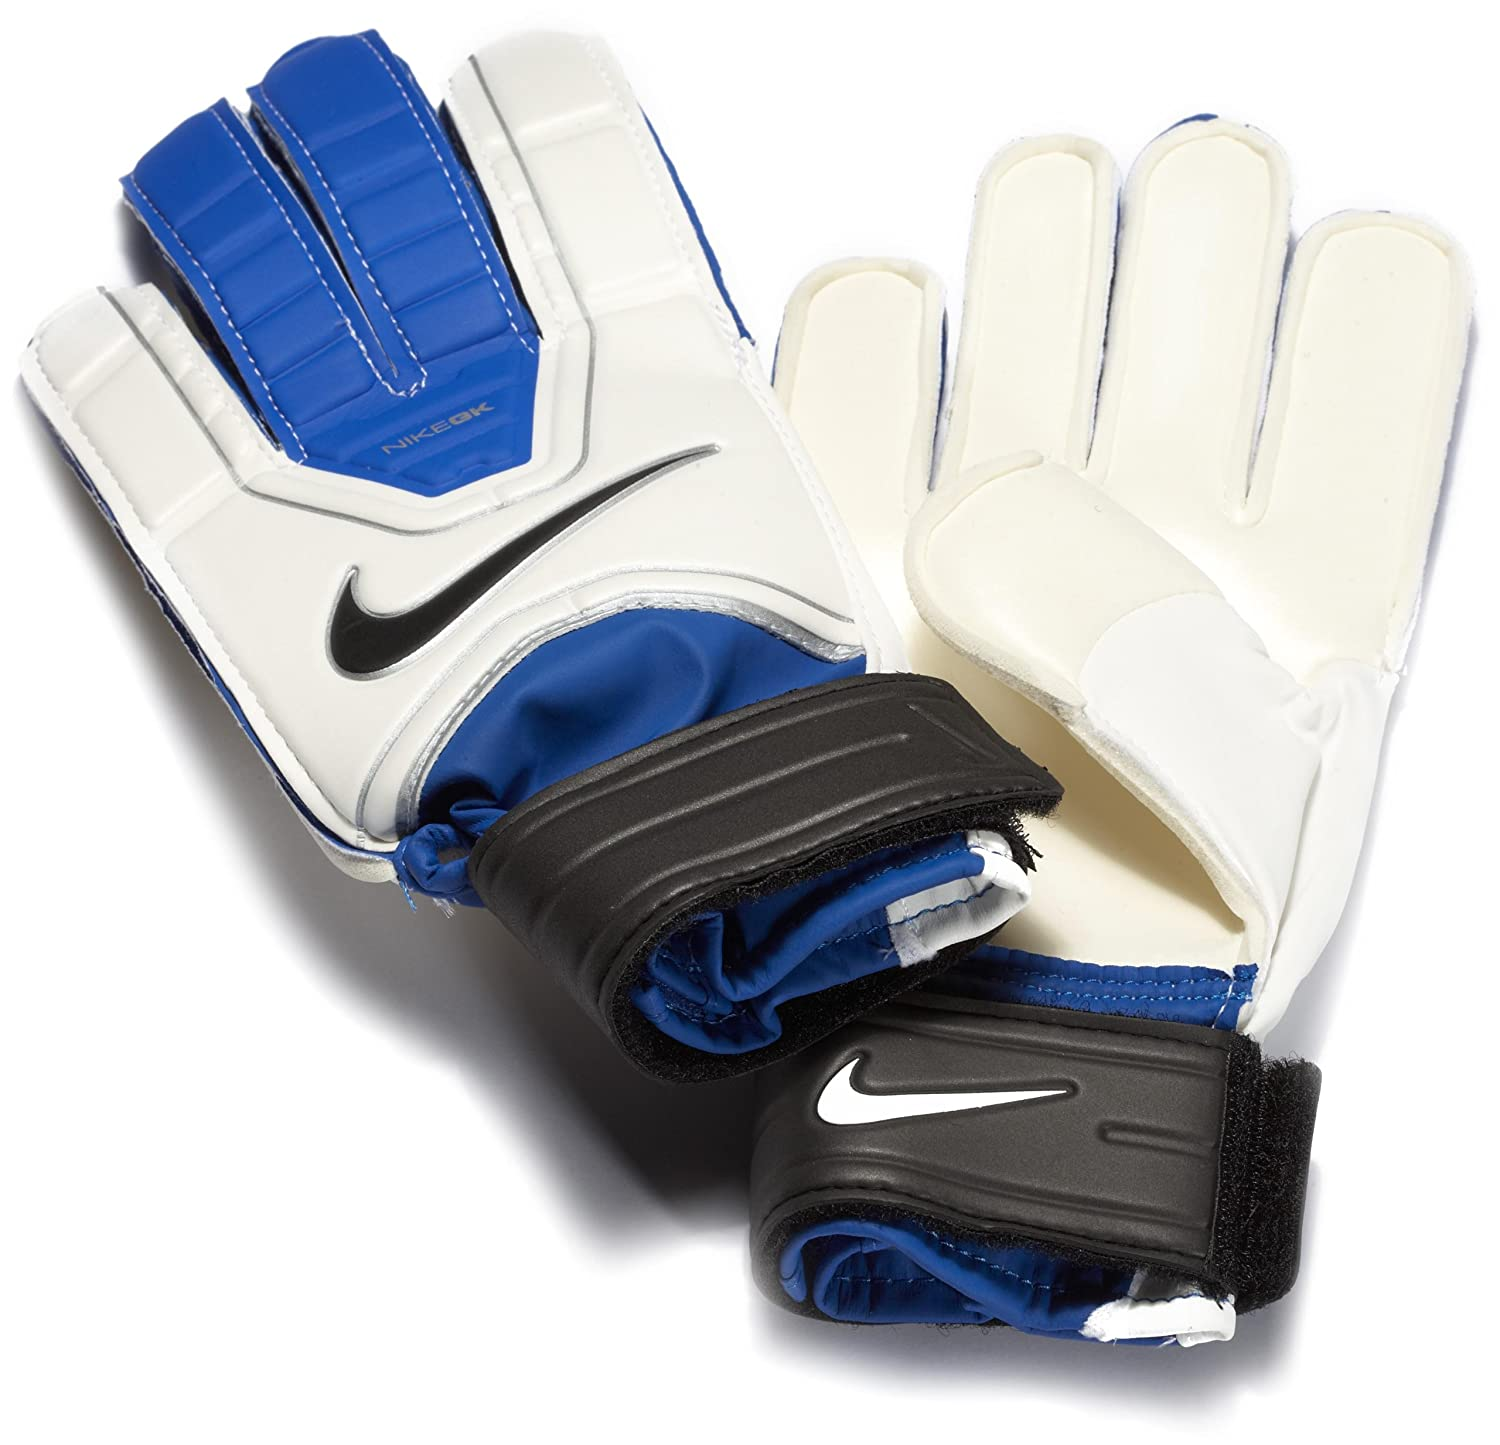 80ed3e416 Amazon.com : NIKE GK CLASSIC (ADULT UNISEX) : Soccer Goalie Gloves : Sports  & Outdoors